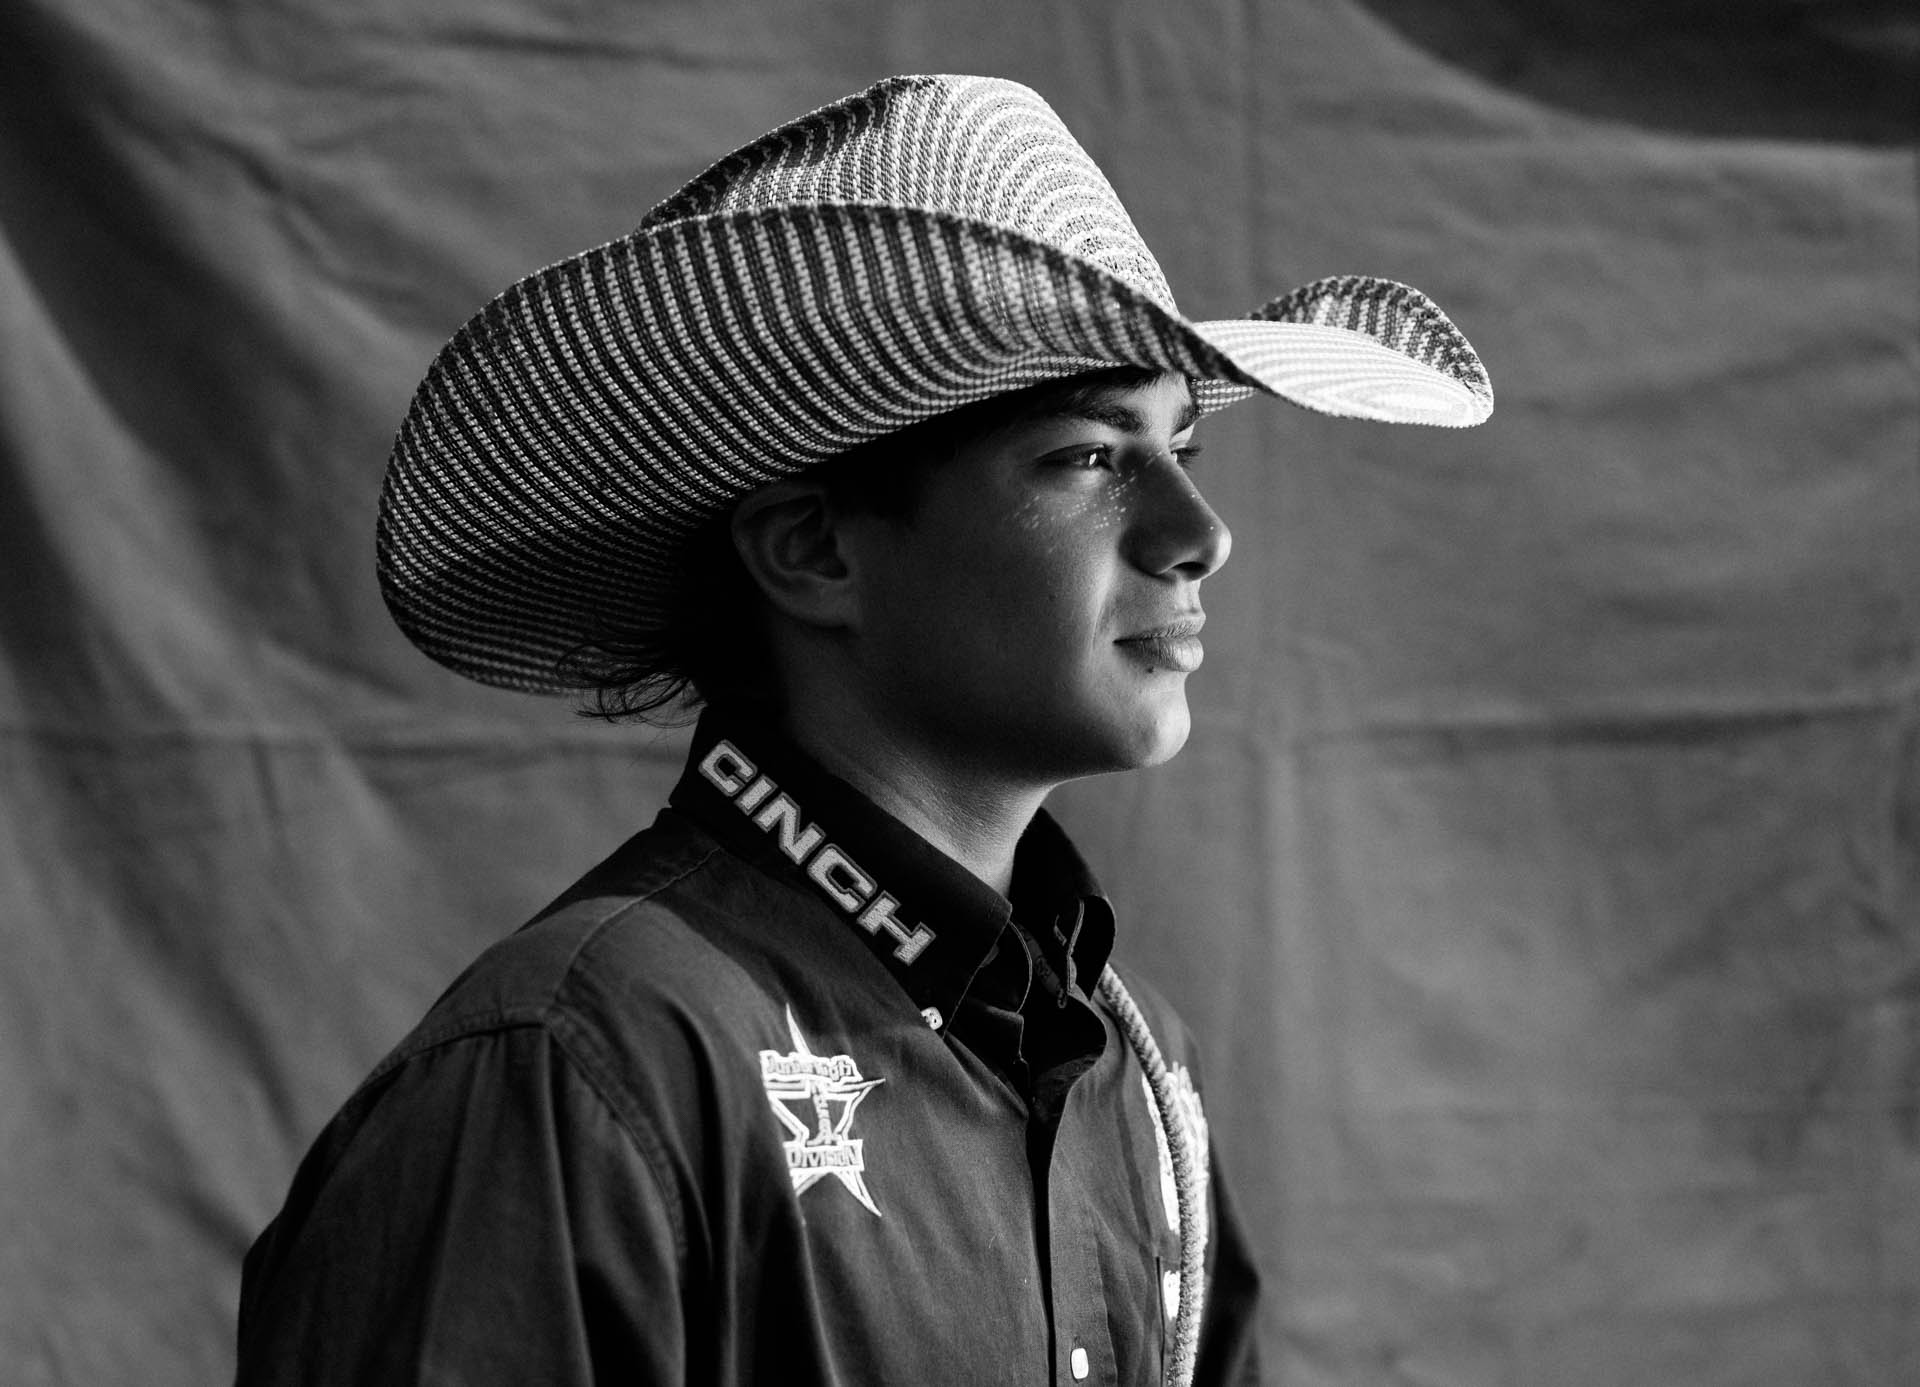 teen-cowboy-dramatic-portrait.JPG